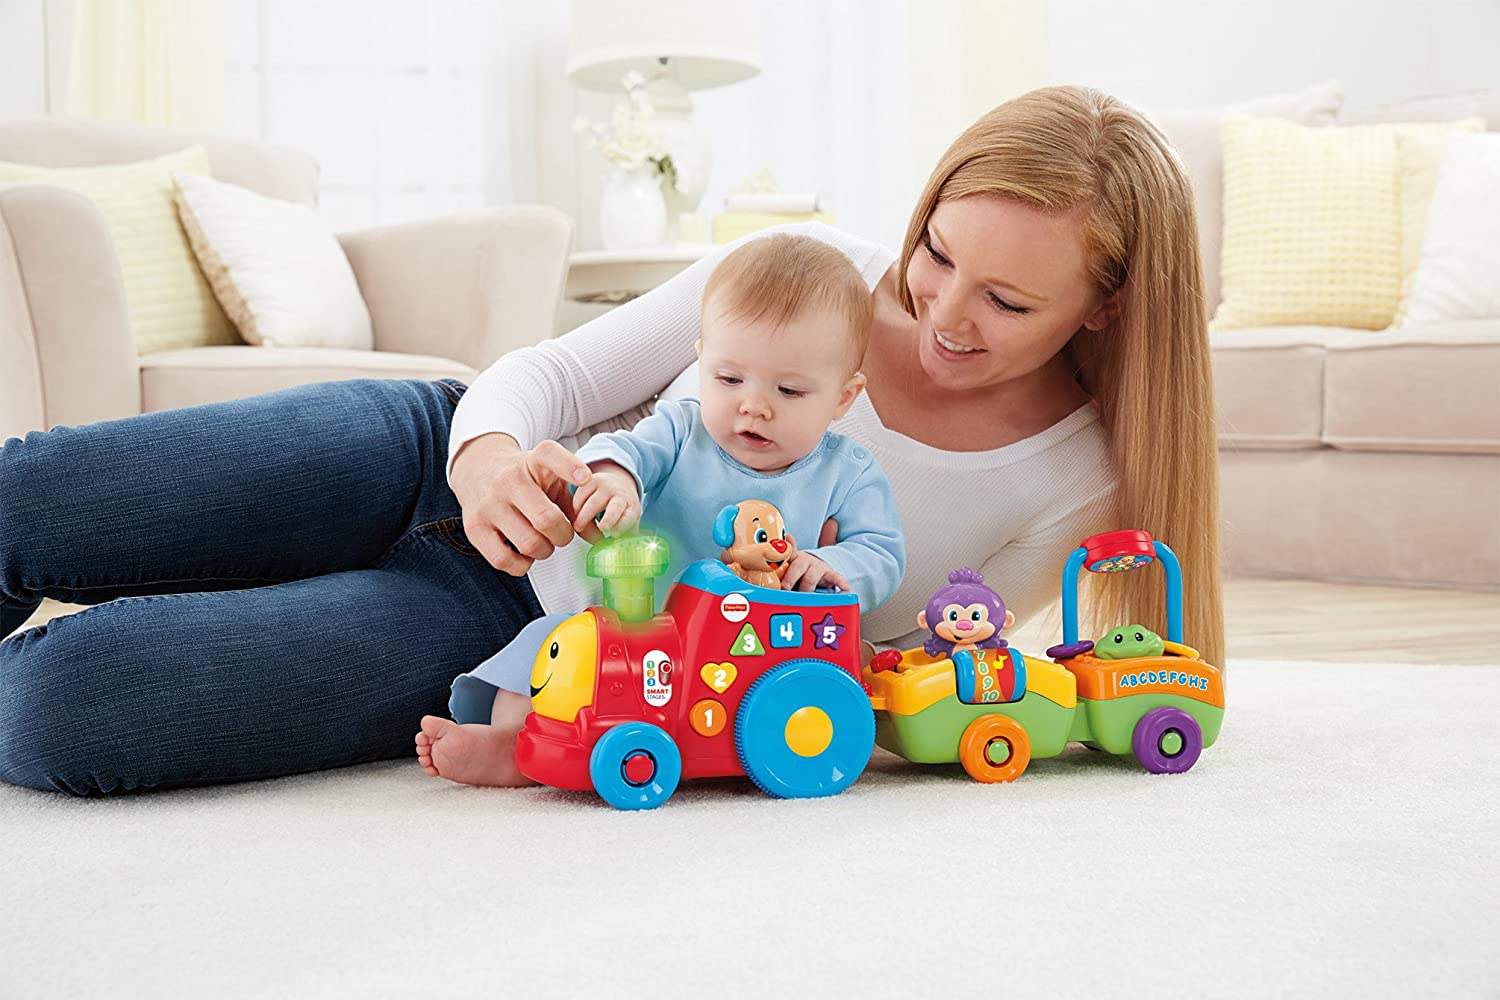 Great Learning Toys For 1 Year Olds : Best toys for year old boys